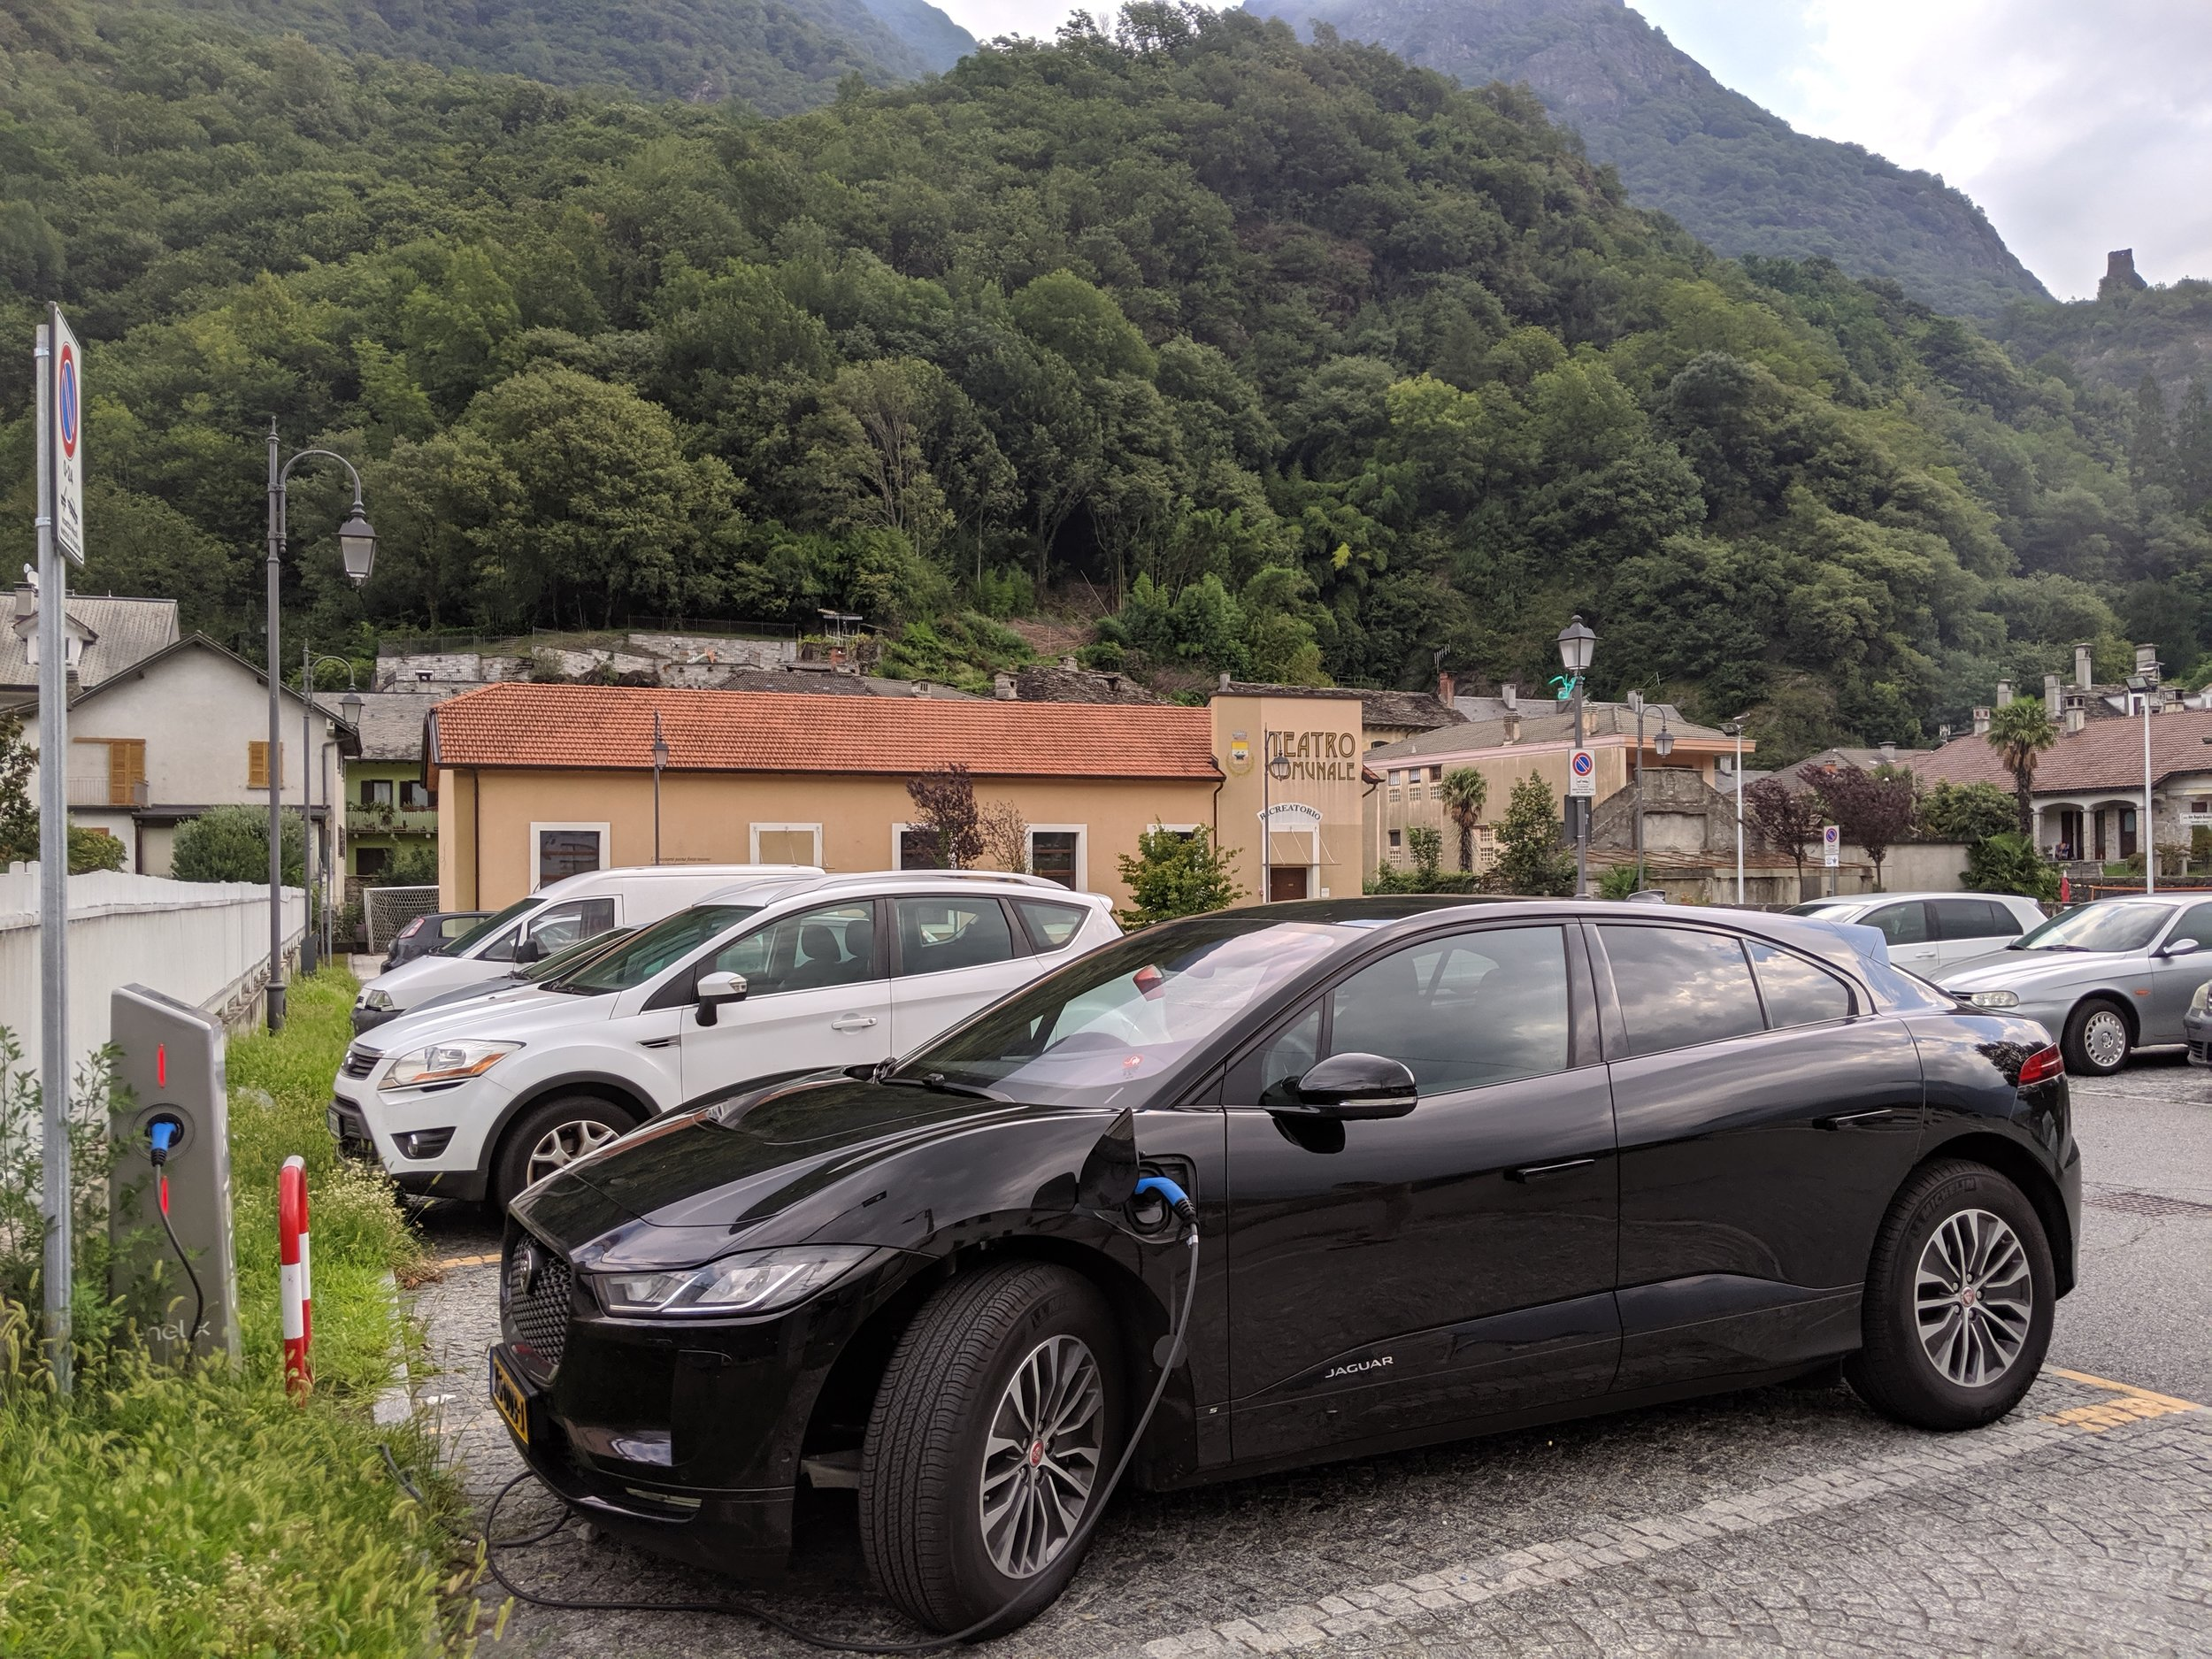 Charging up in a beautiful Italian village, Vogogna. Find the charger in the  Duferco-app.